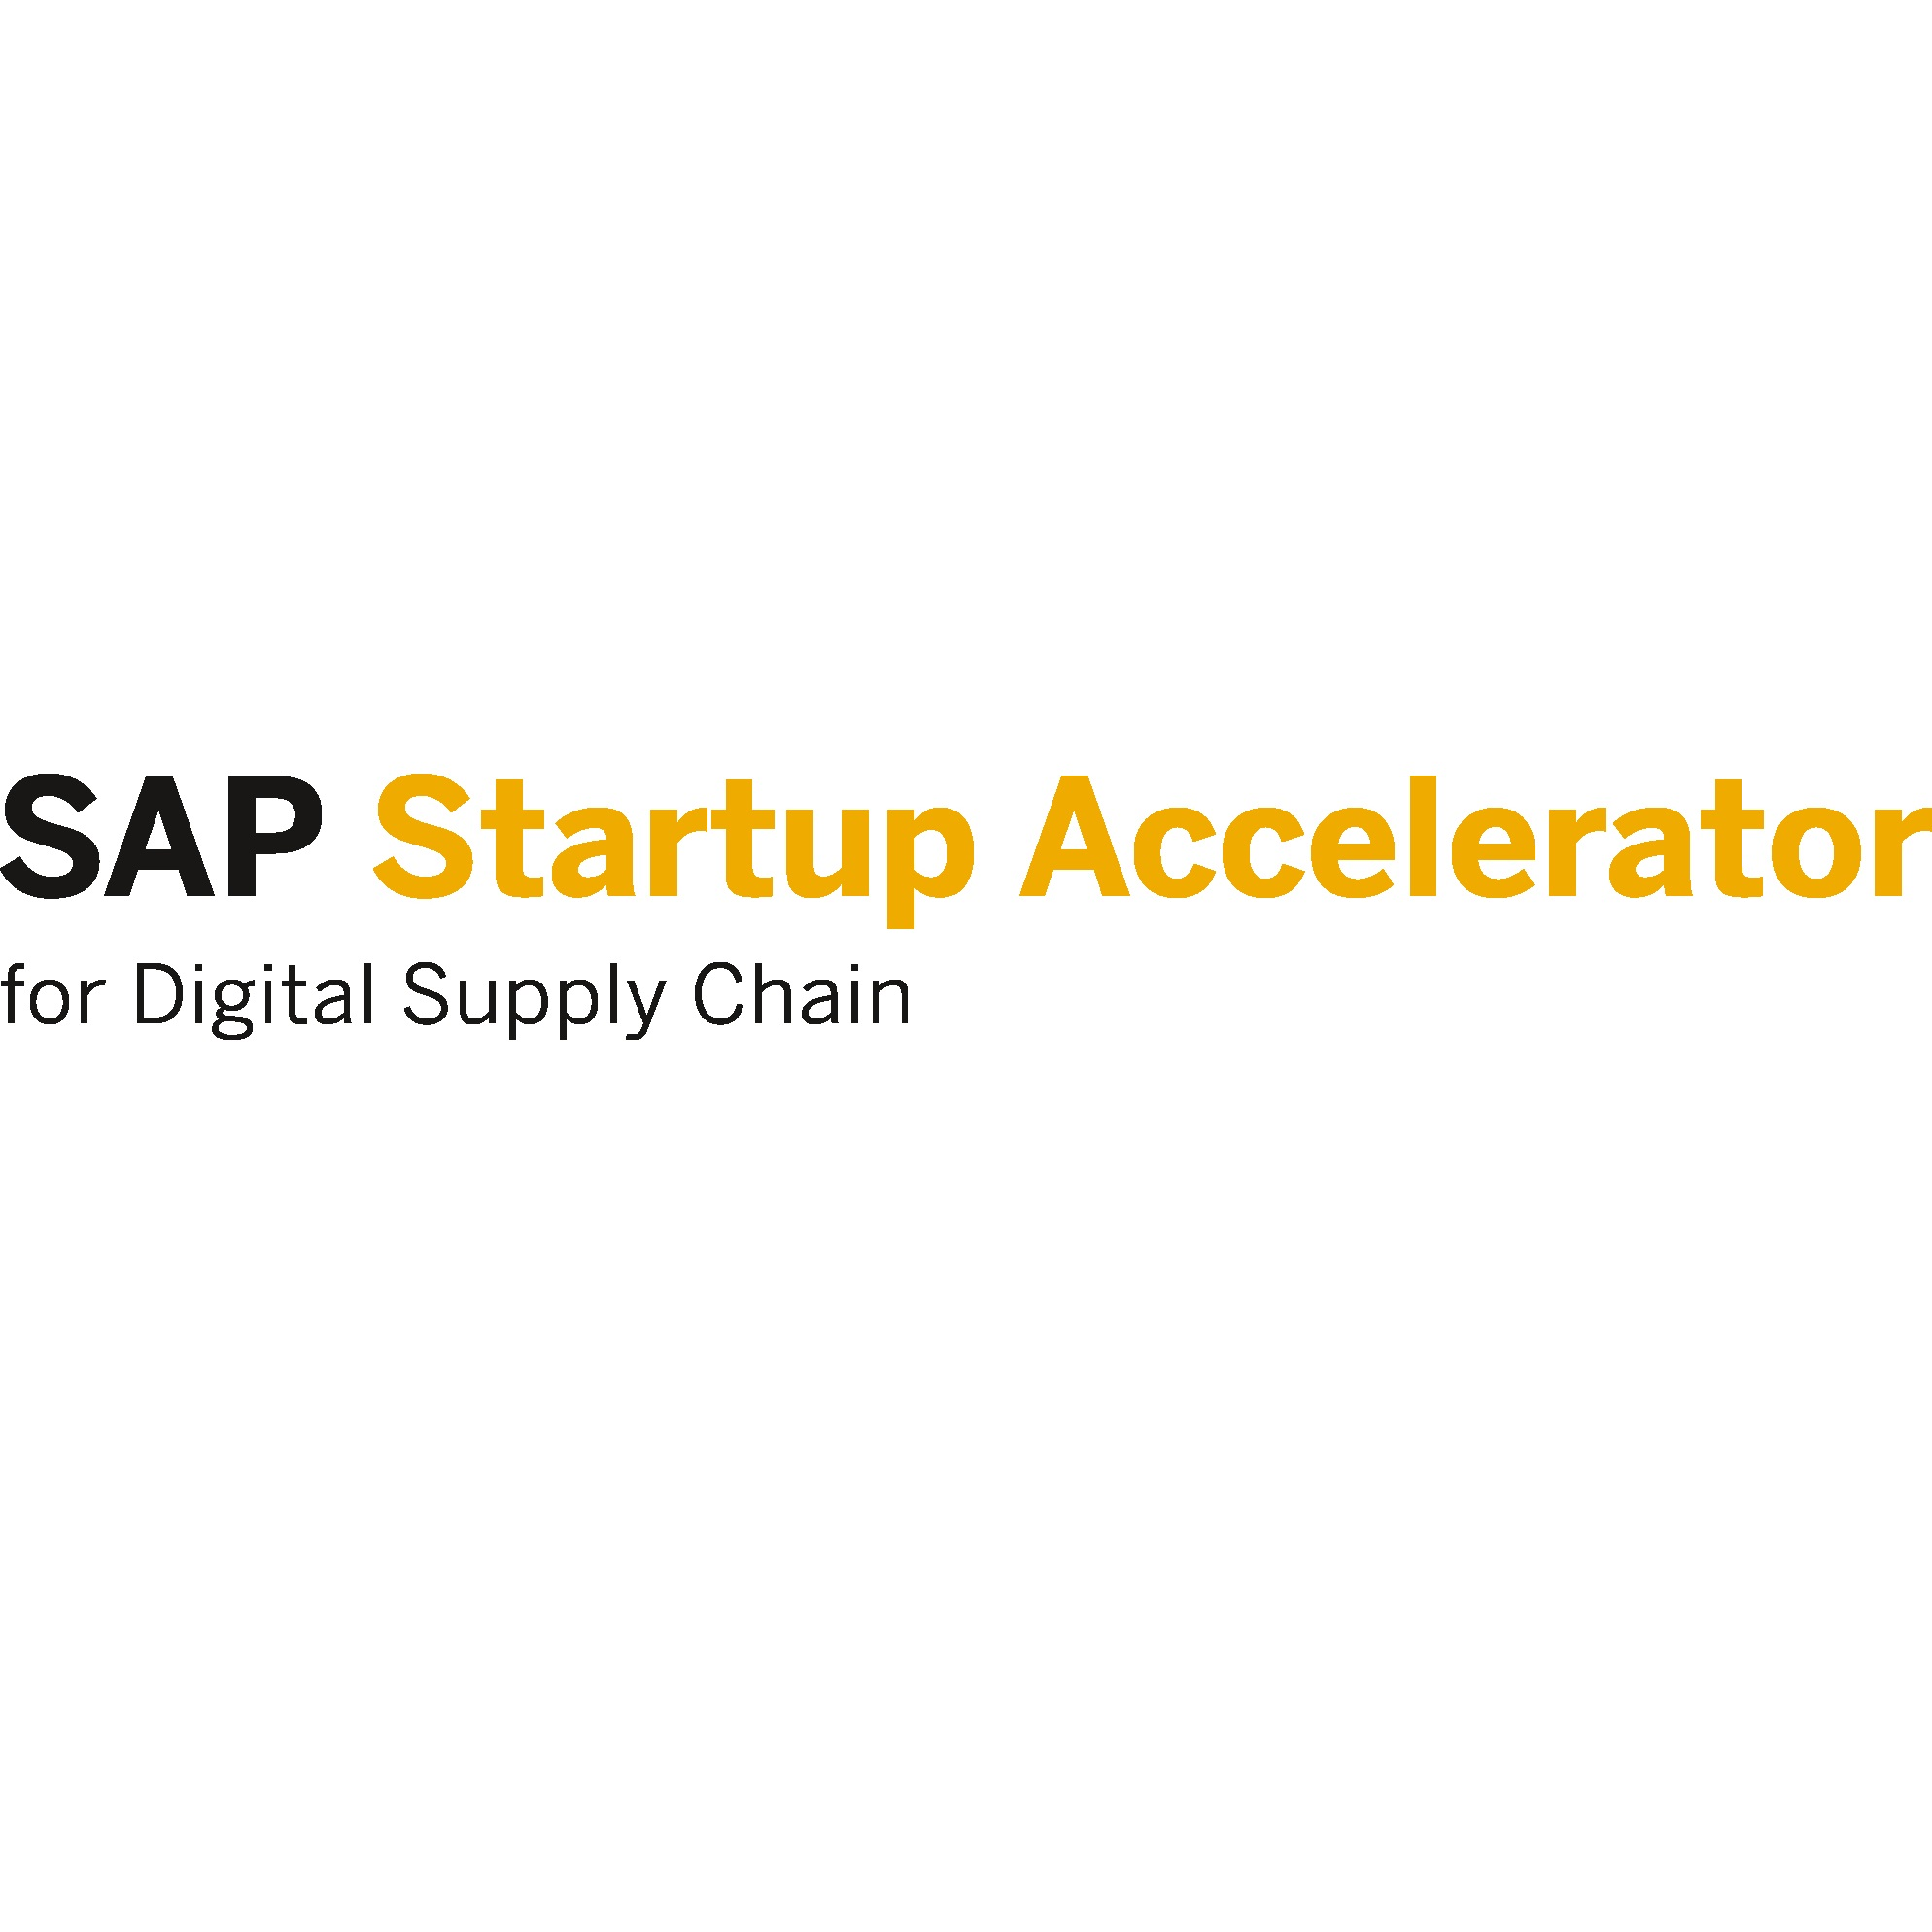 SAP Startup Accelerator for Digital Supply Chain